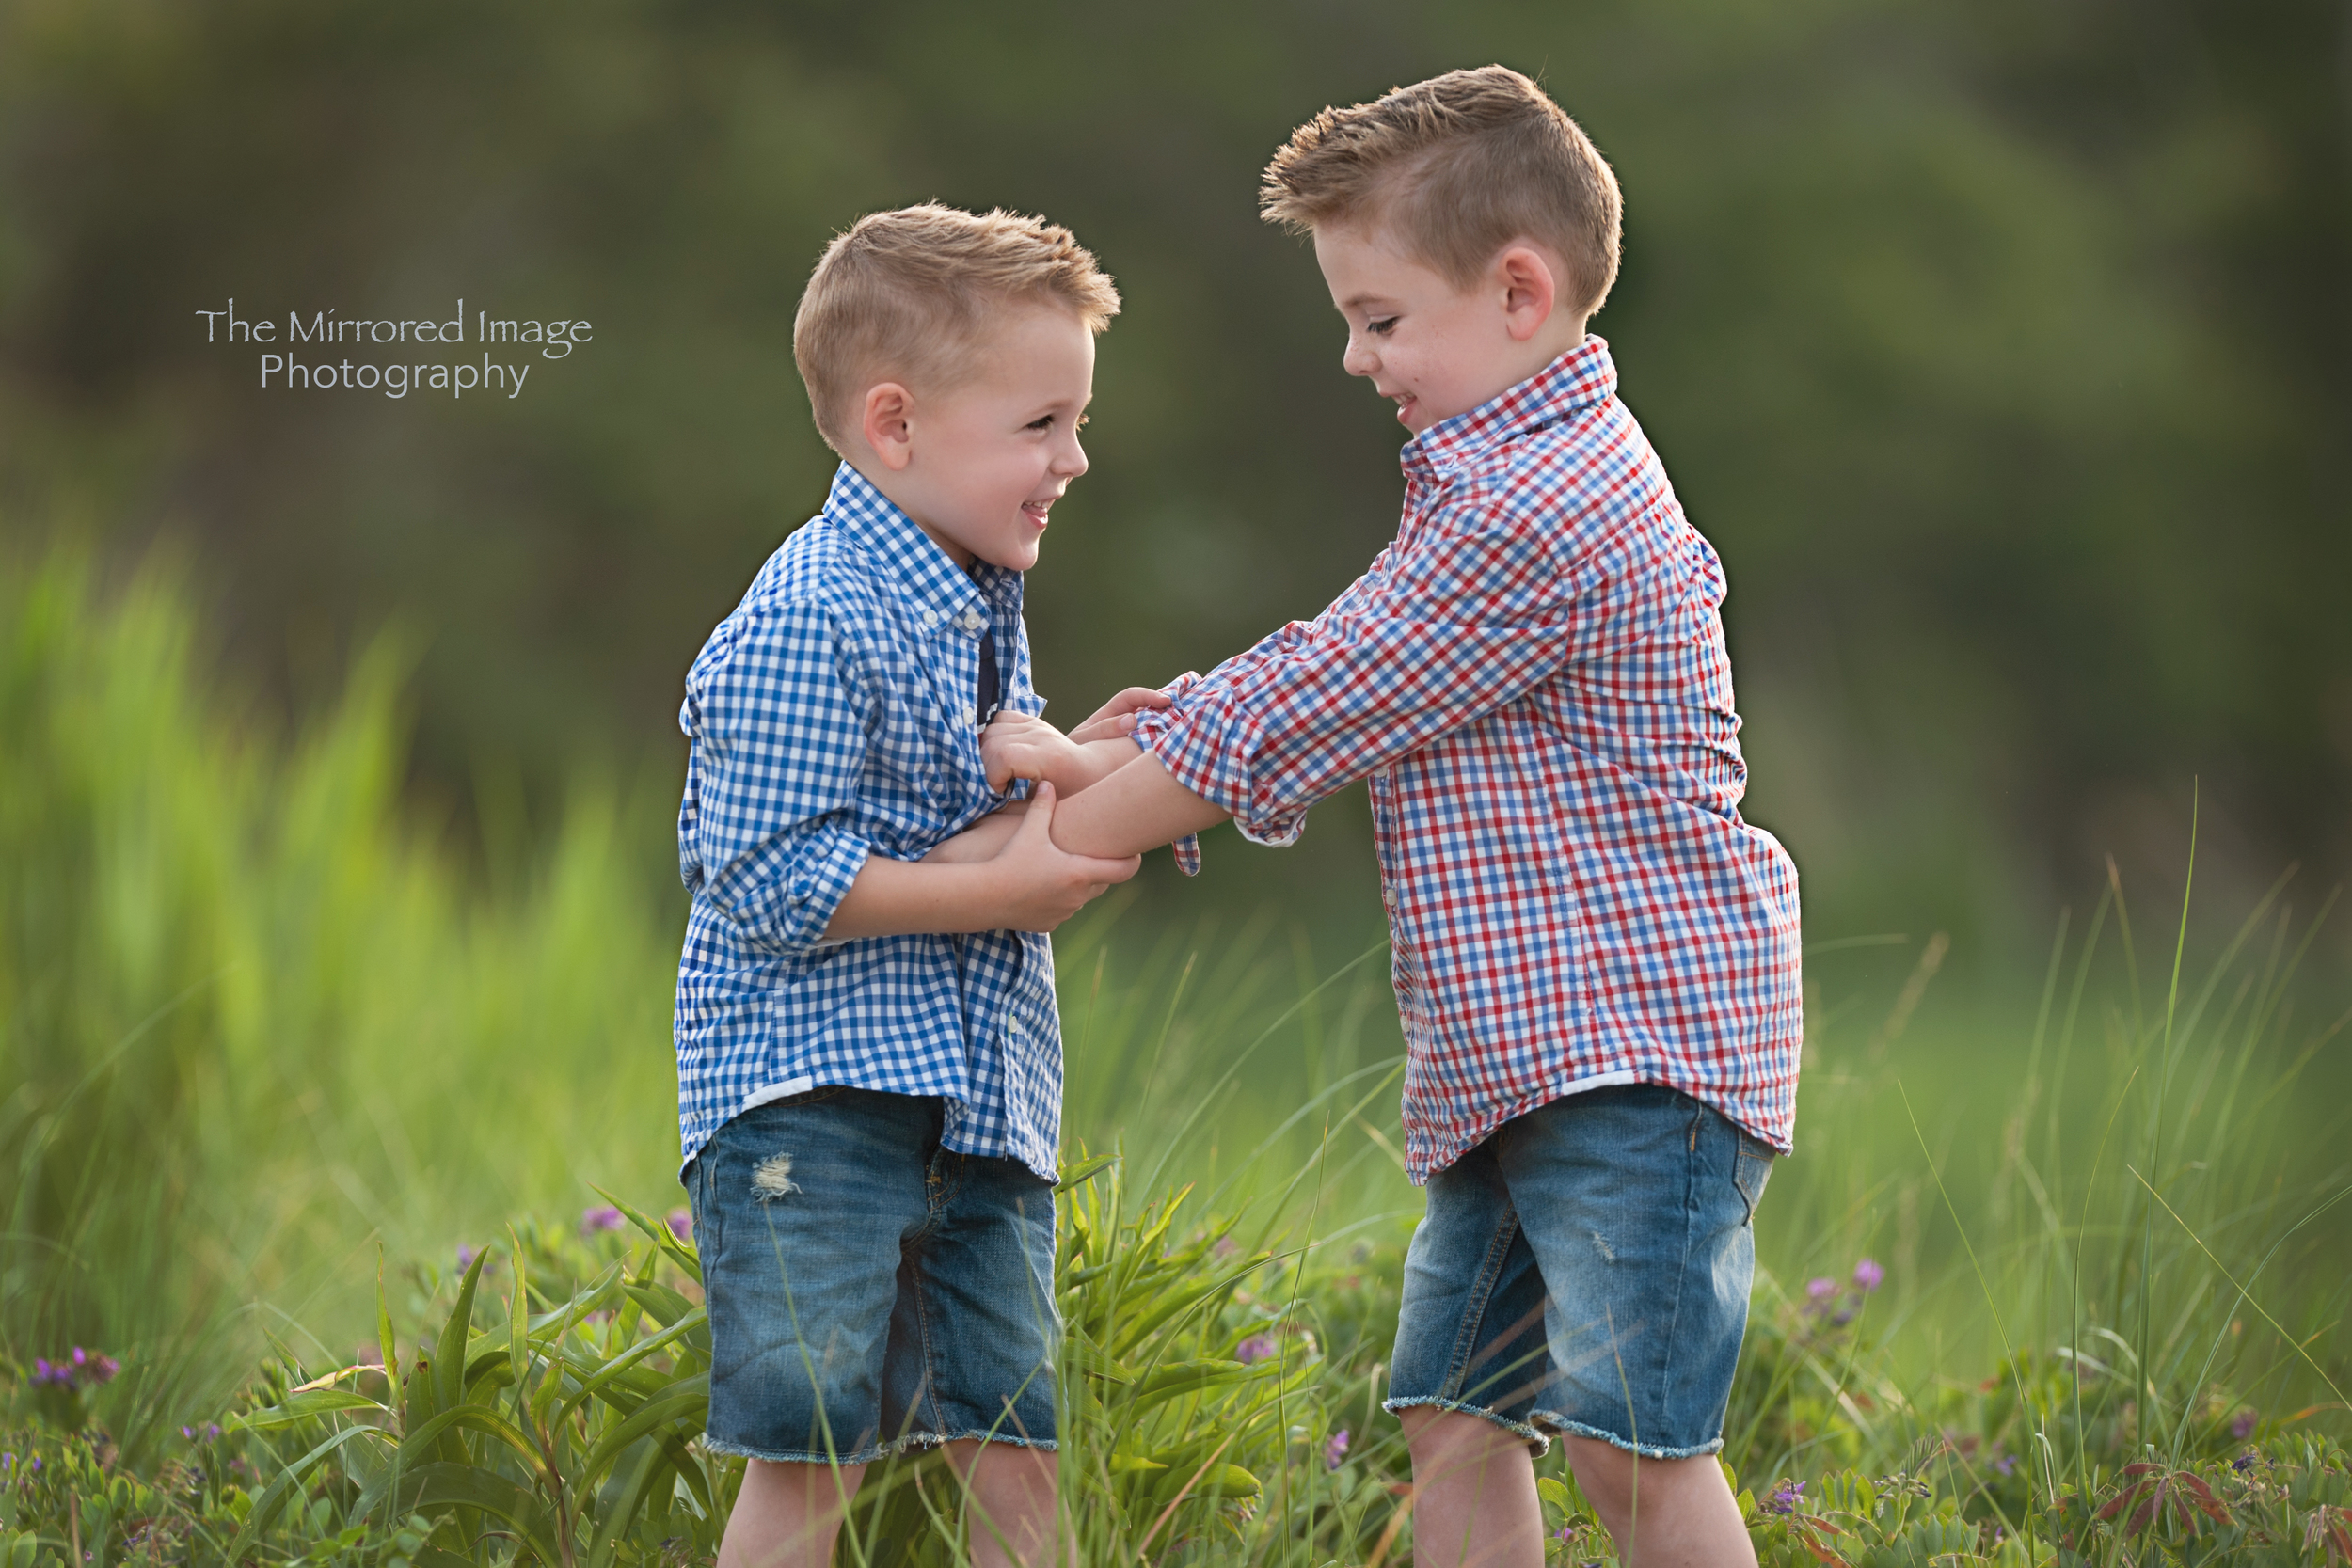 family photos, children's portraits, child photography, family photography, evening portrait sessions, summer portrait sessions, summer family photos, family photos, family photographer, portrait photographer